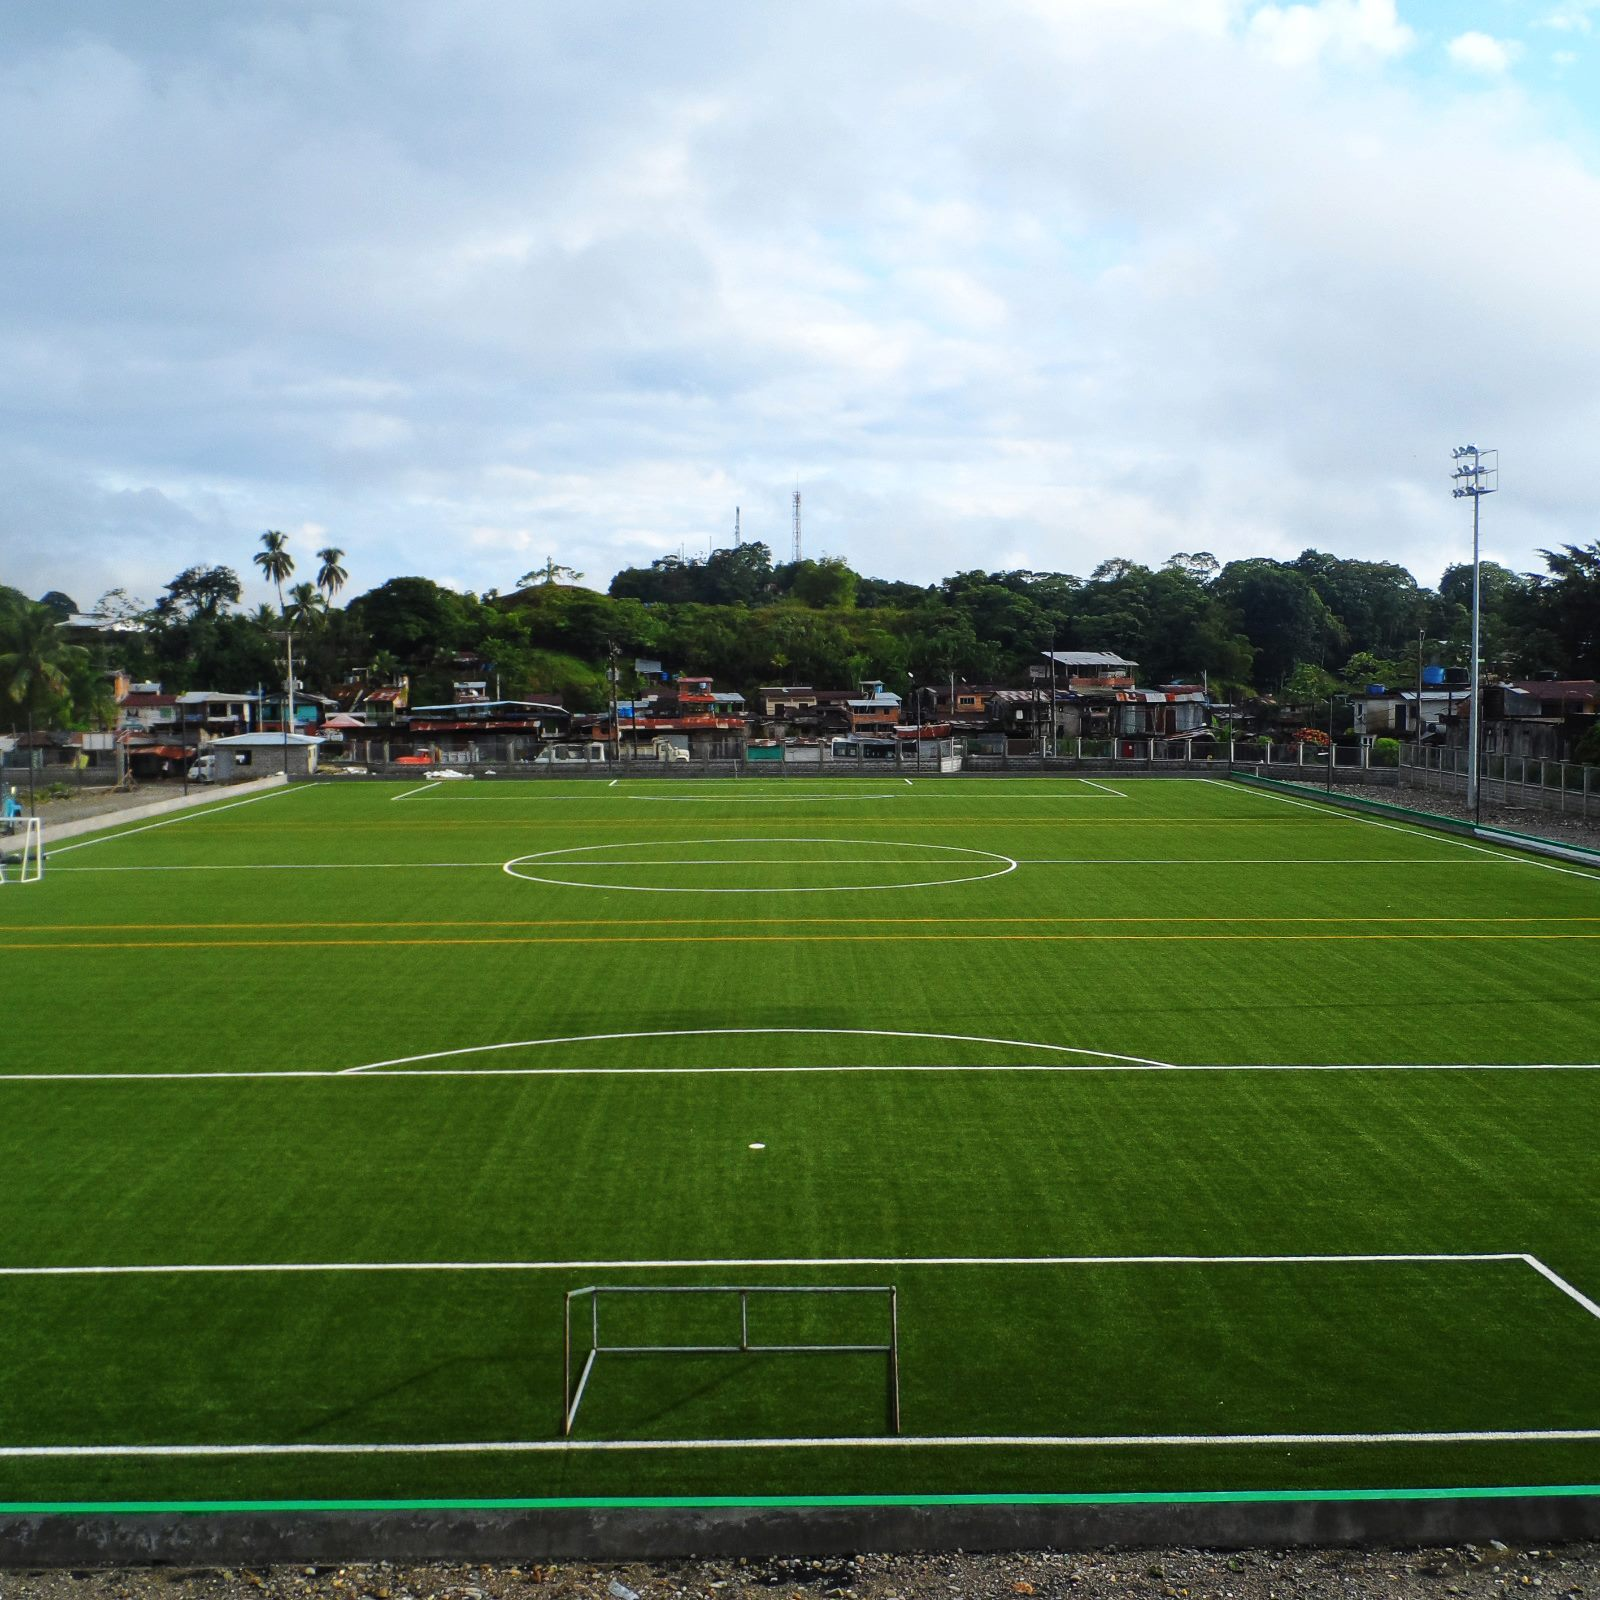 Fifa Quality Synthetic Turf Field Provides Social Impact